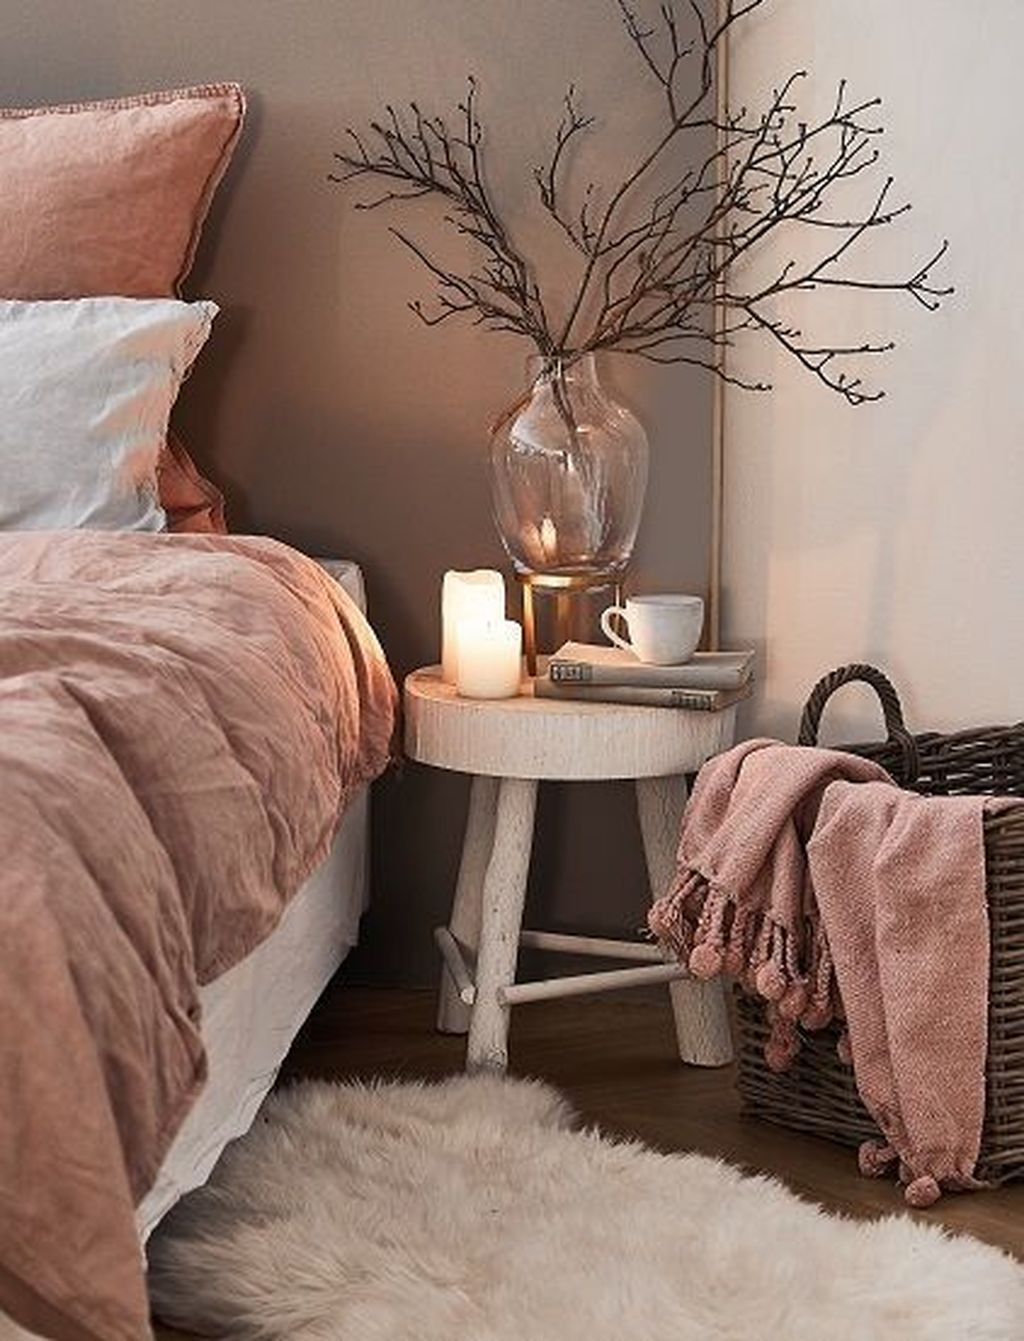 Inspiring Fall Interior Design Ideas 17